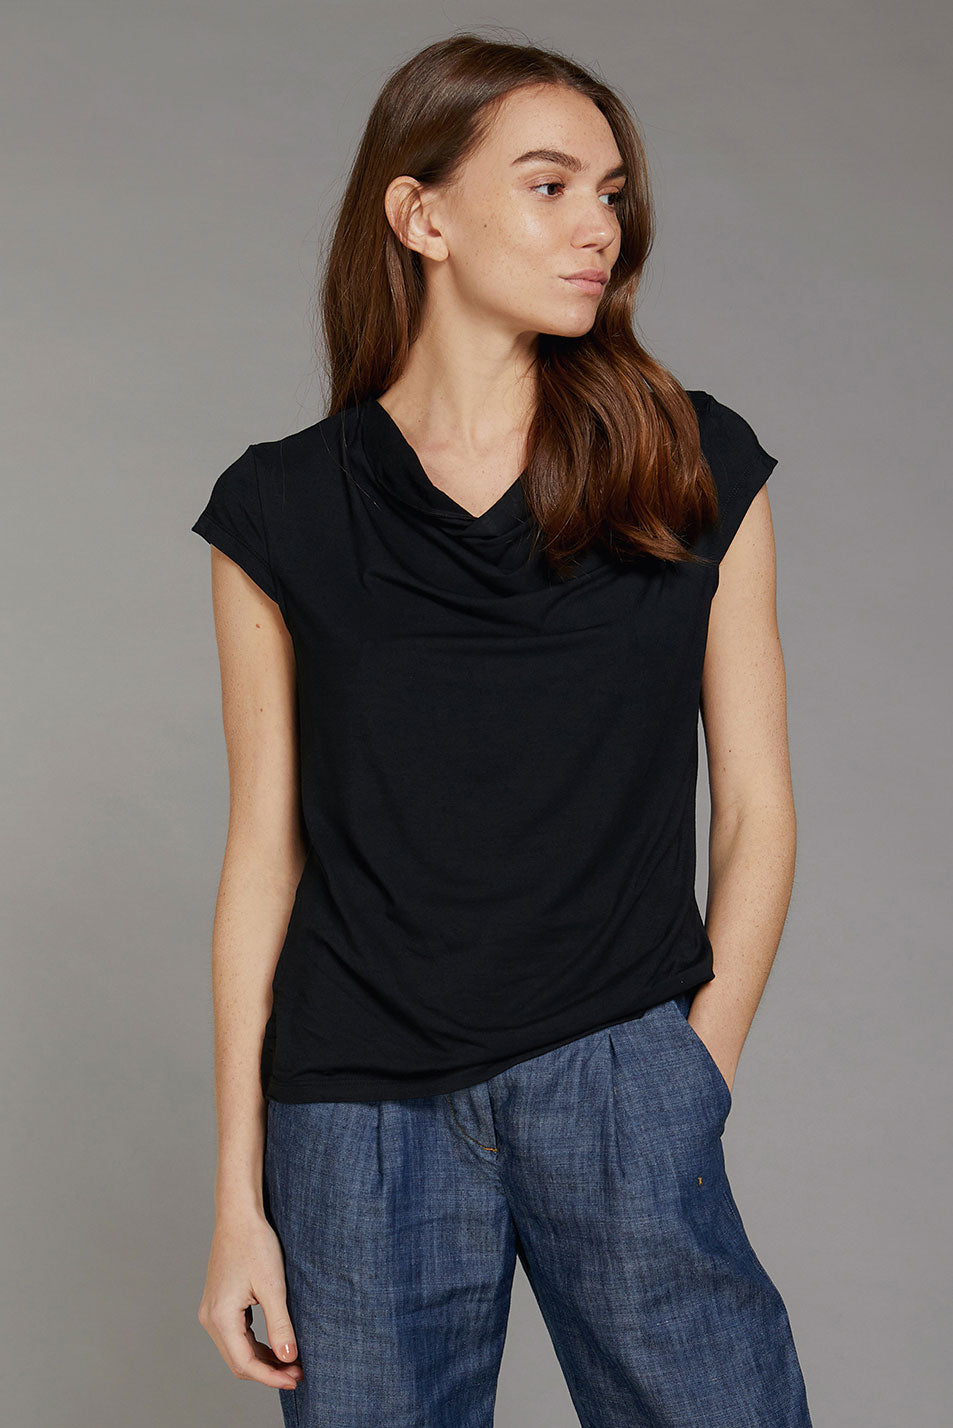 SENSA Bamboo Top Black